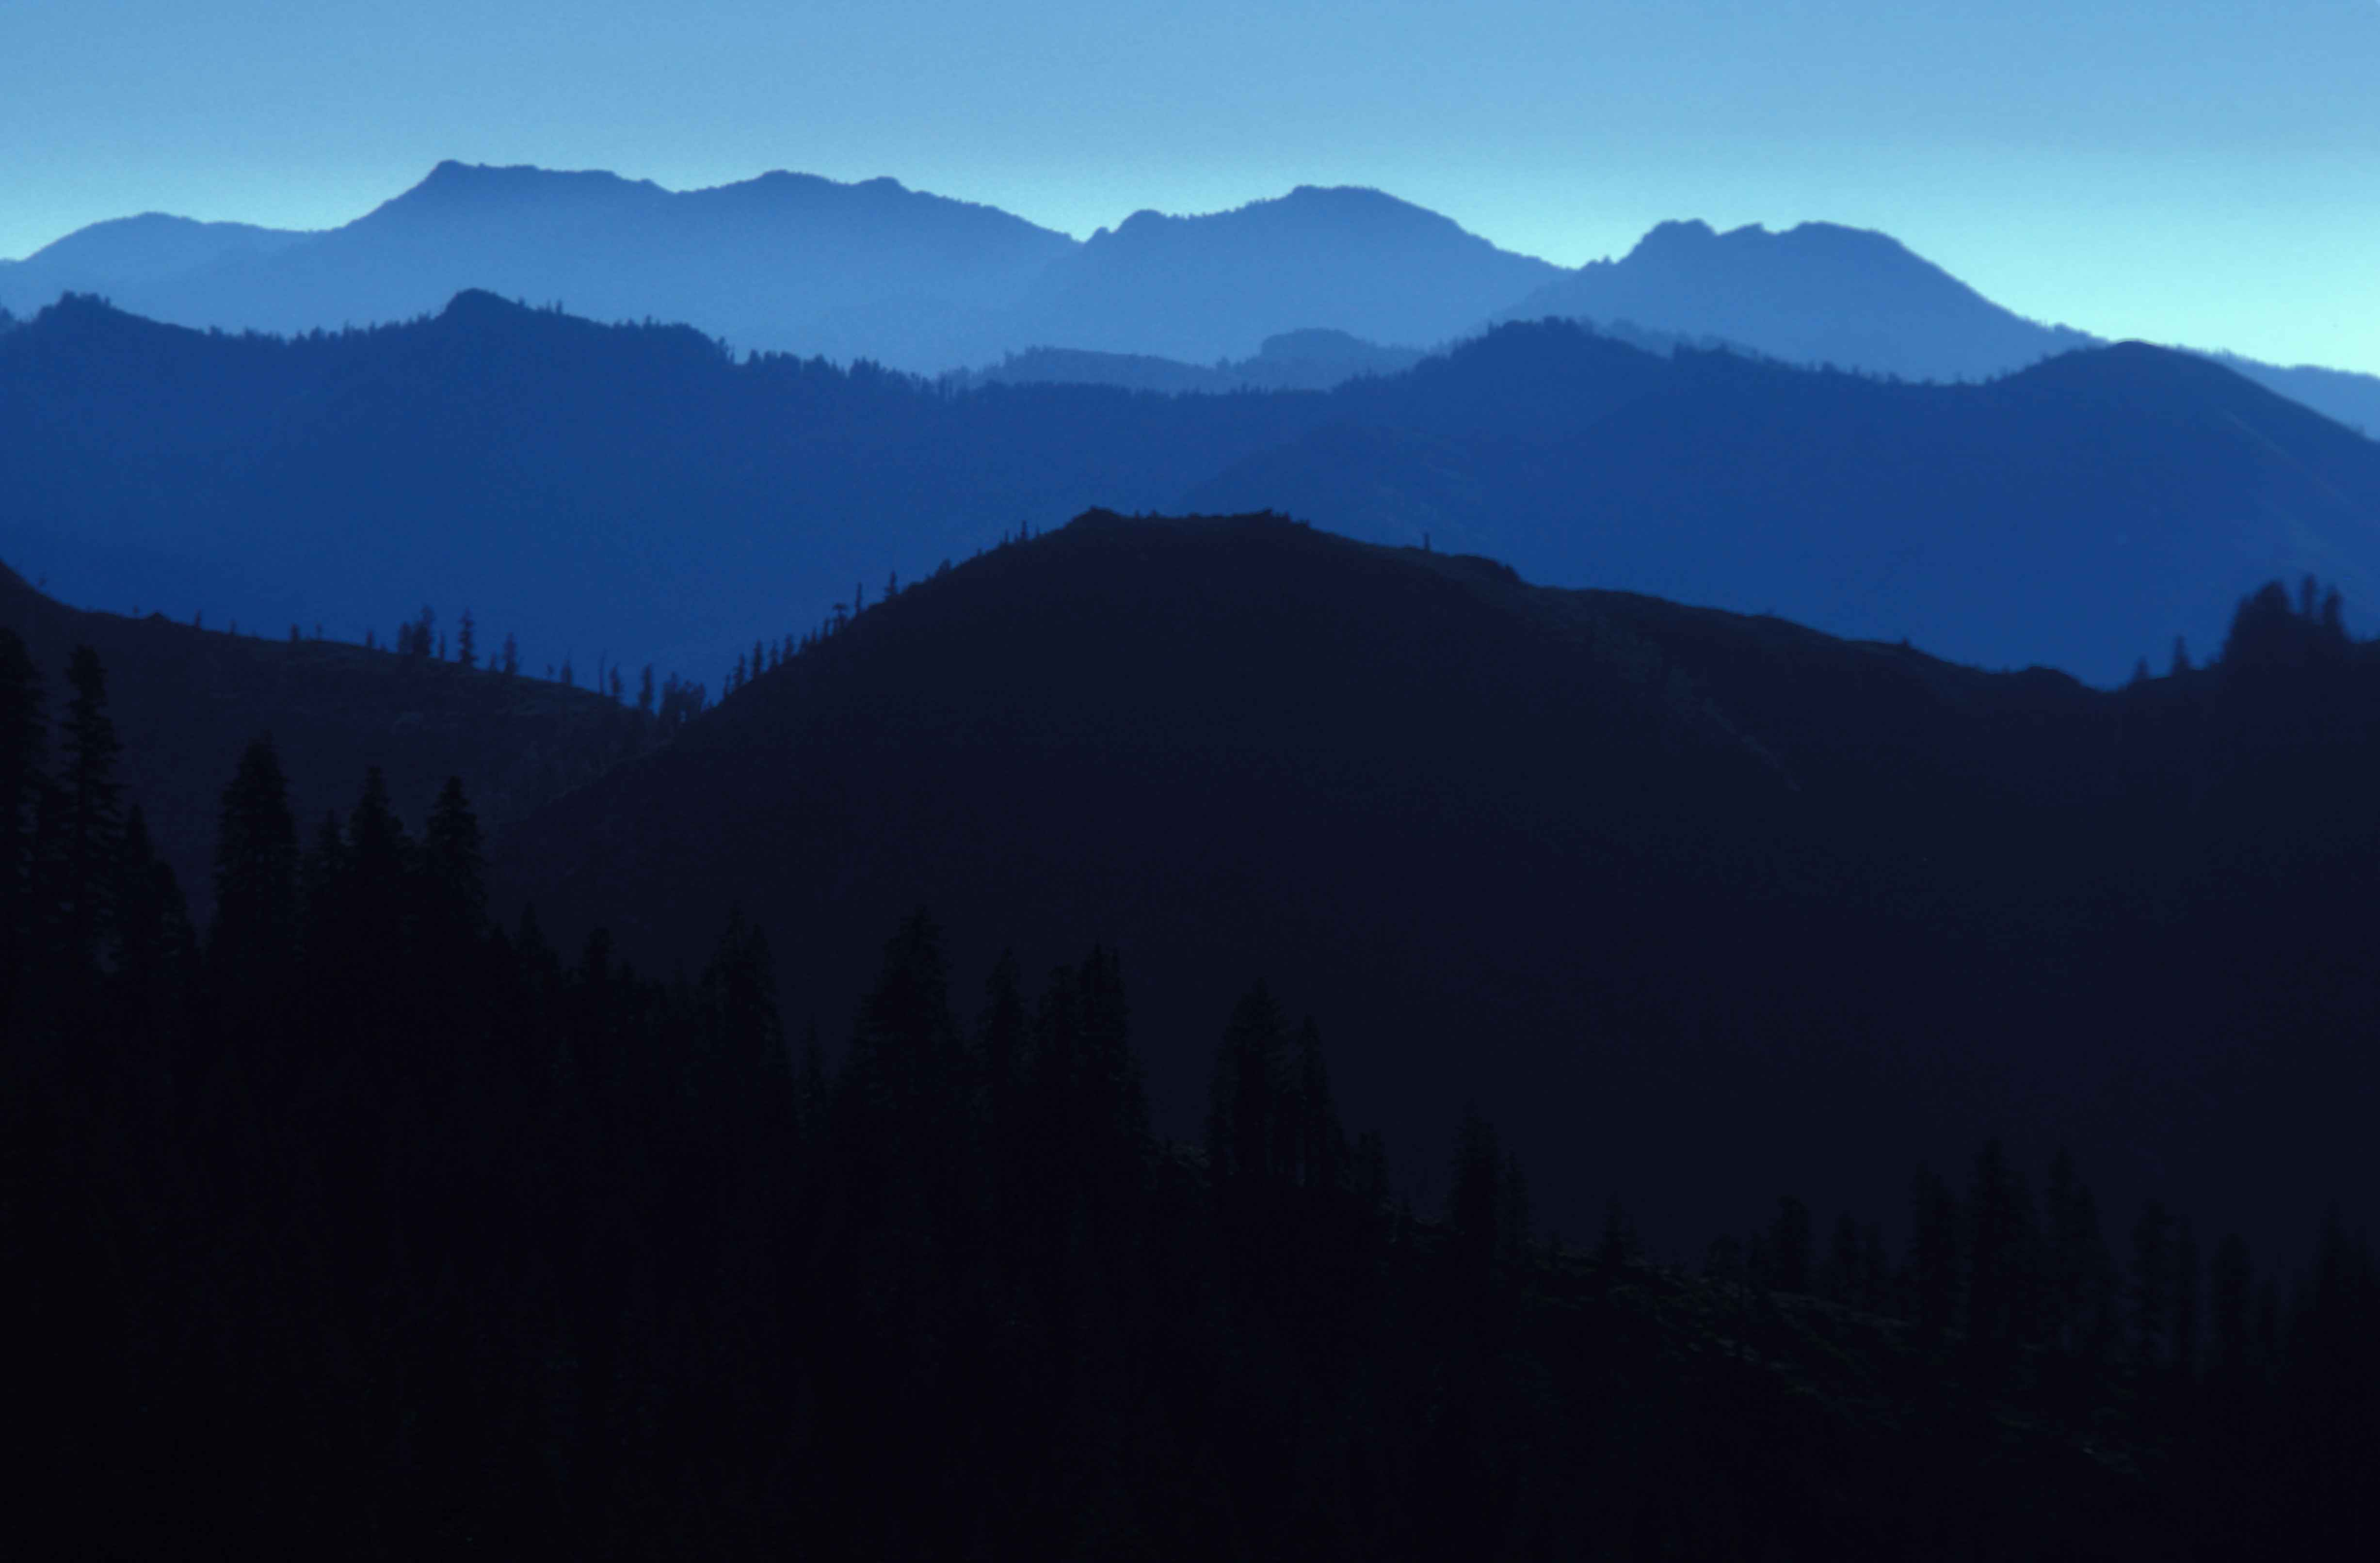 Free Landscape Wallpaper Hd File View Of Mountains In Silhouette In The Marble